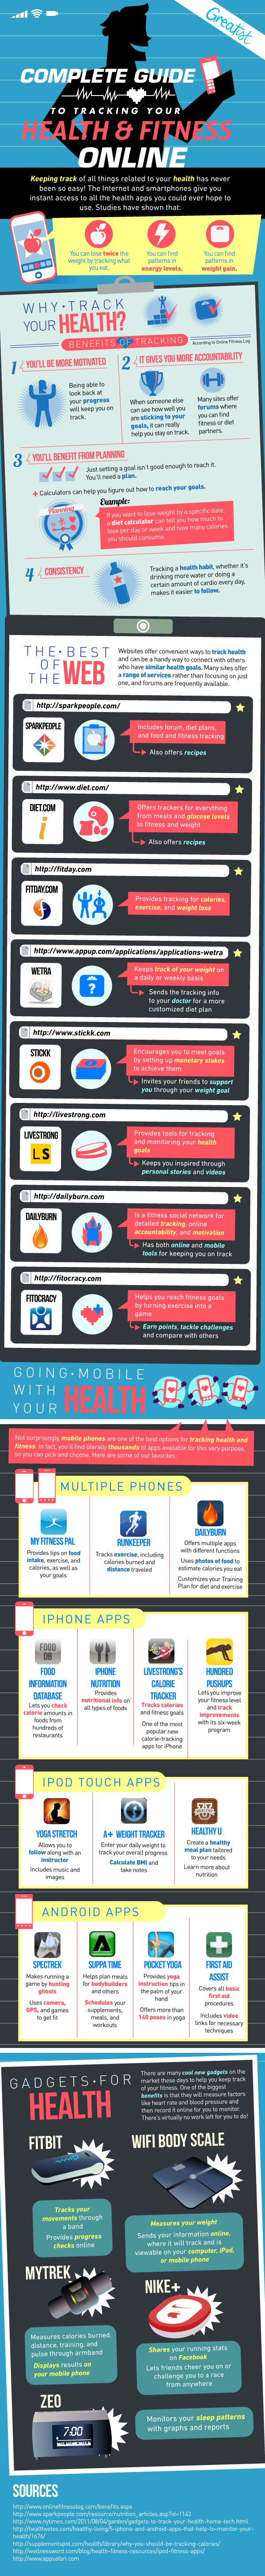 Keeping track of all things related to your health & fitness has never been so easy thanks to the Internet & mobile phones. Here's why they work & which are our favorites in epic infographic form.